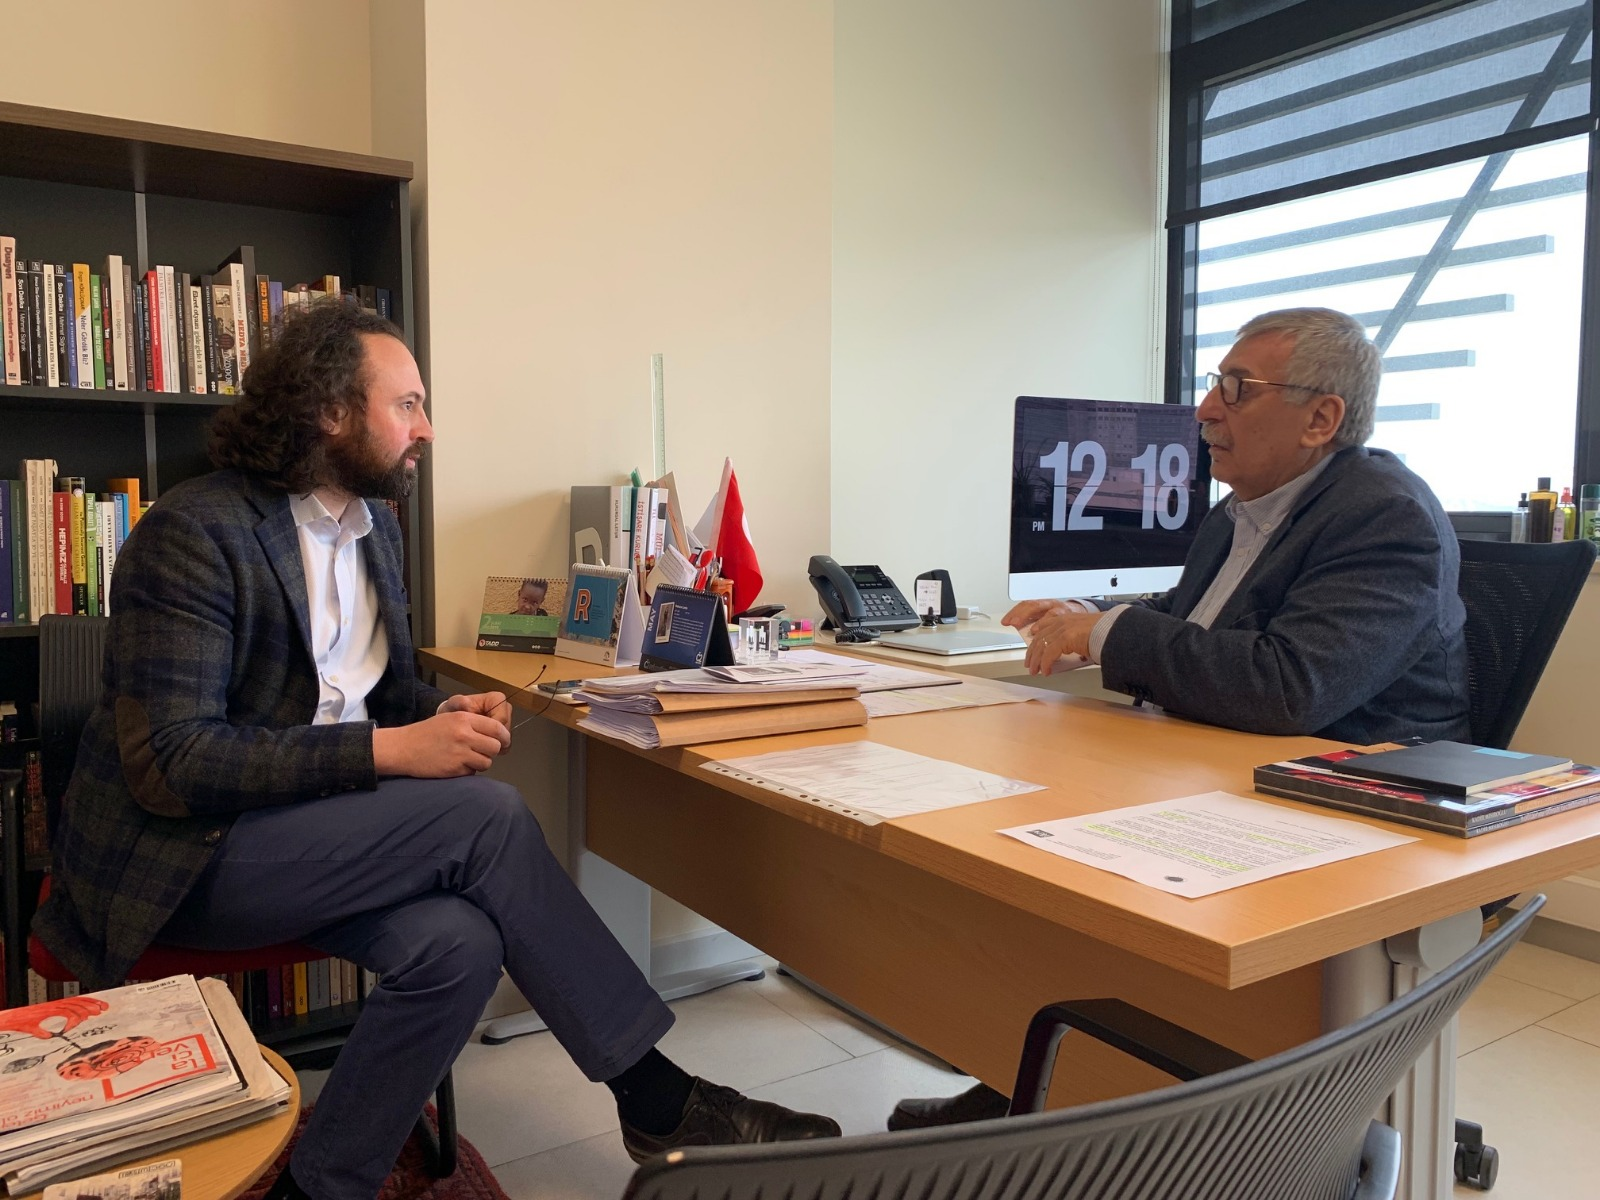 Politics Today Editor-in-Chief Faruk Yaslicimen with Dr. Hakki Ocal during the interview at Ibn Haldun University